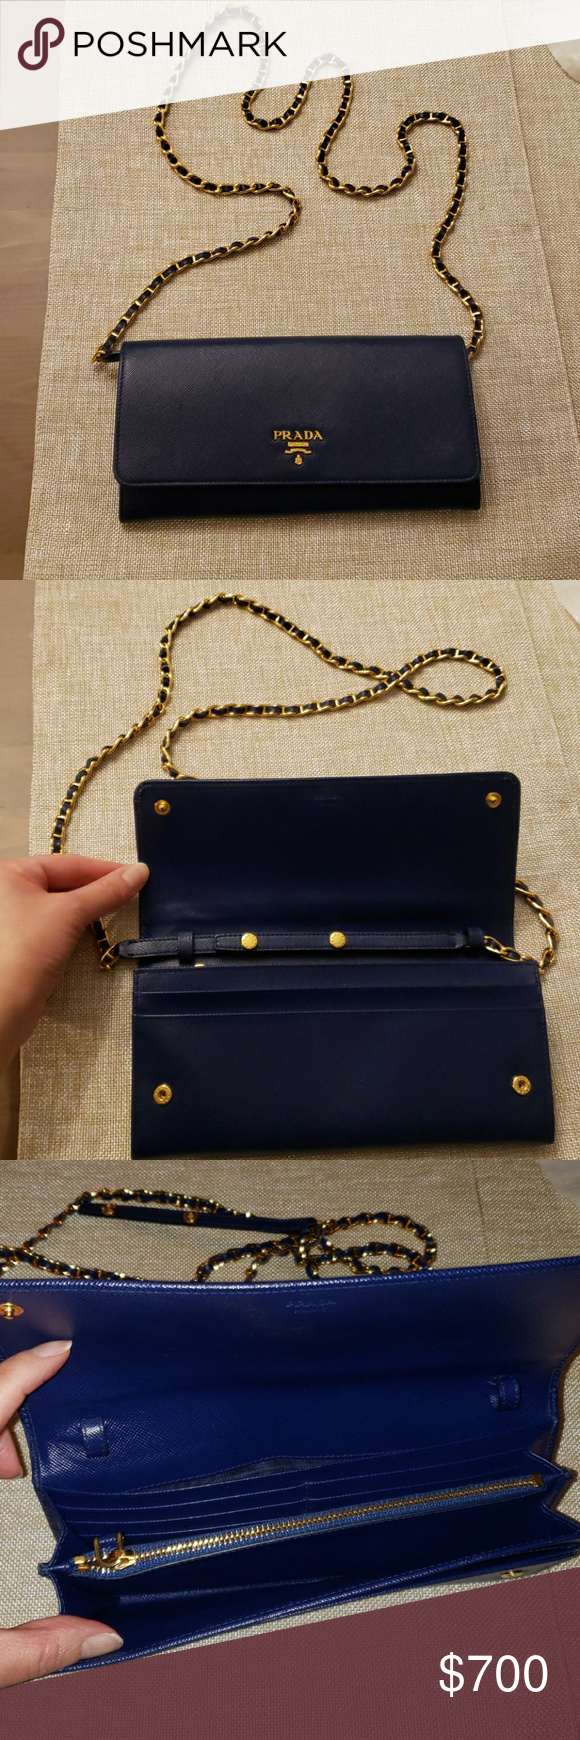 5b409fa251e5 Dust Bag · Prada Wallet On Chain (WOC) Blue leather with gold hardware.  Detachable chain.